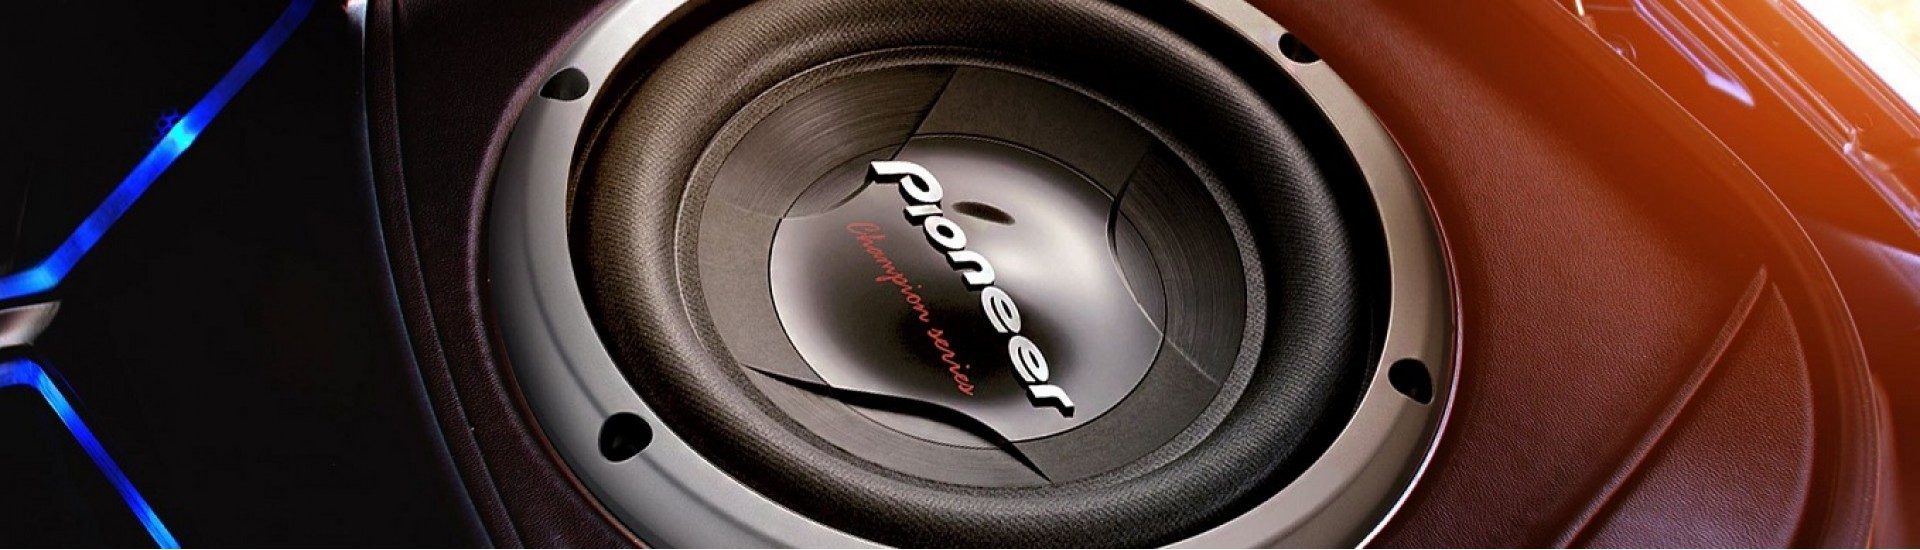 سیستم خودرو ، car audio and electronics